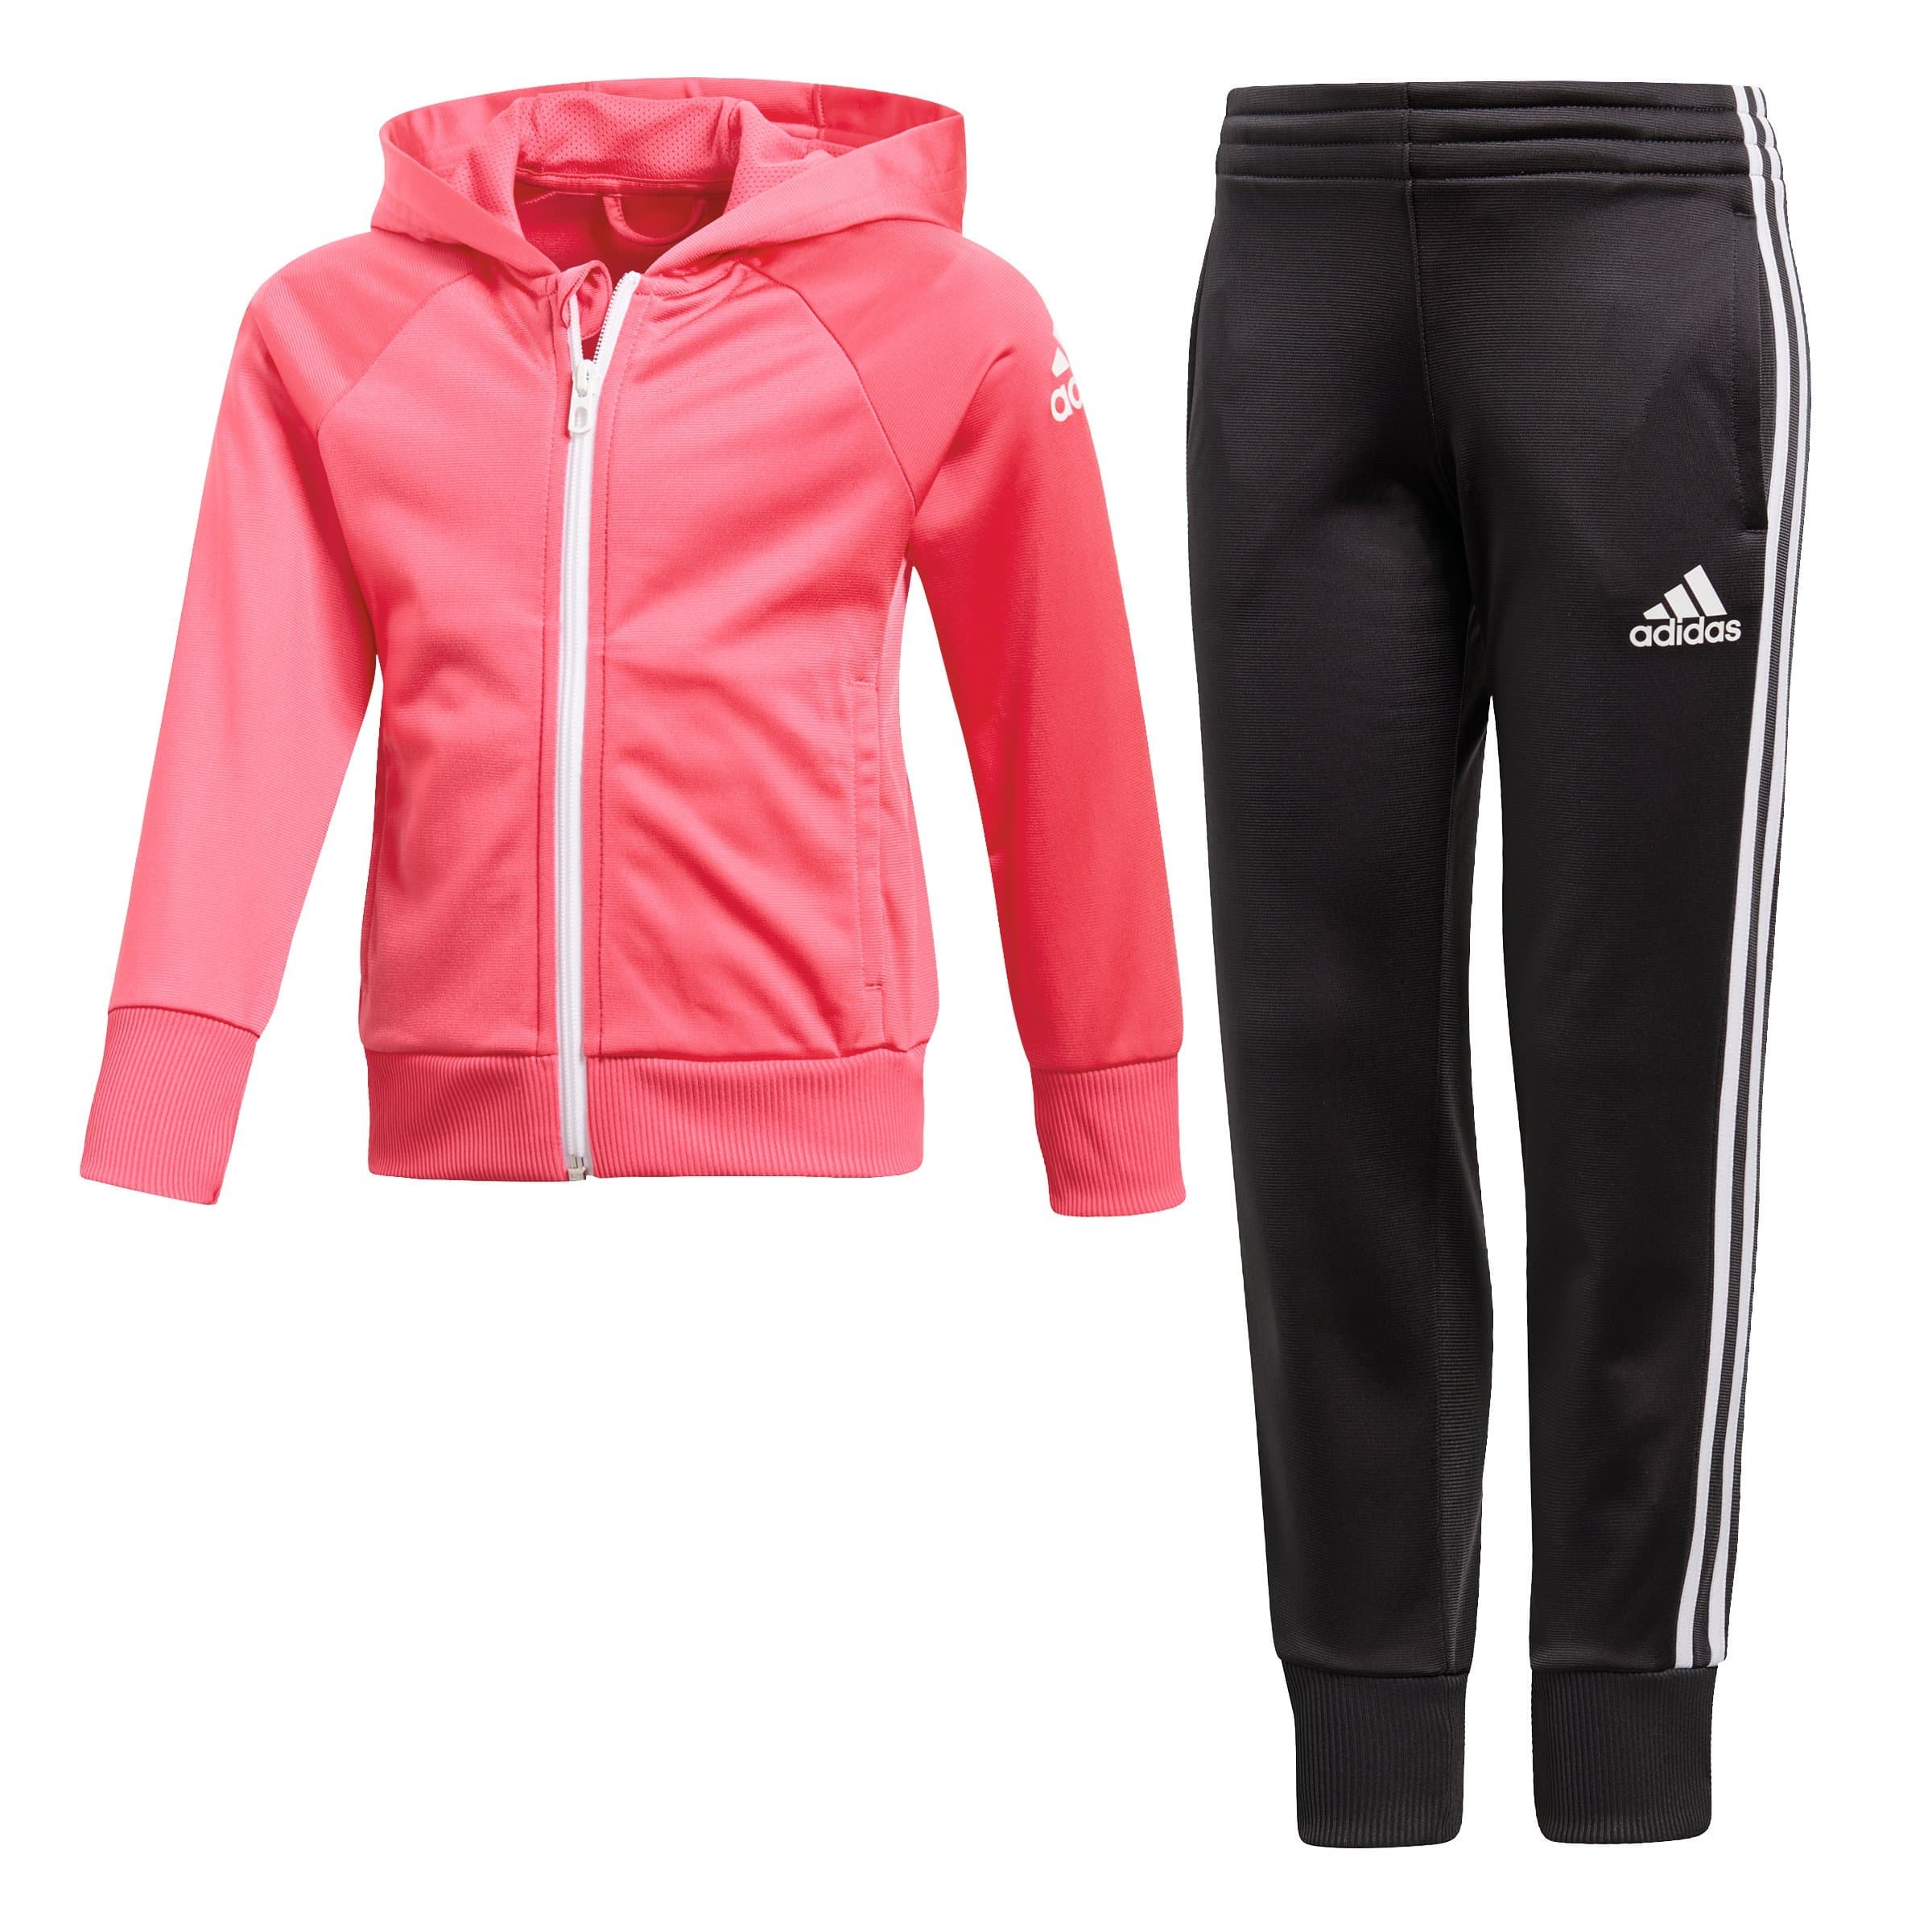 4bbfbd5418 Adidas Knitted Track Suit Girls Tuta per bambina | Migros